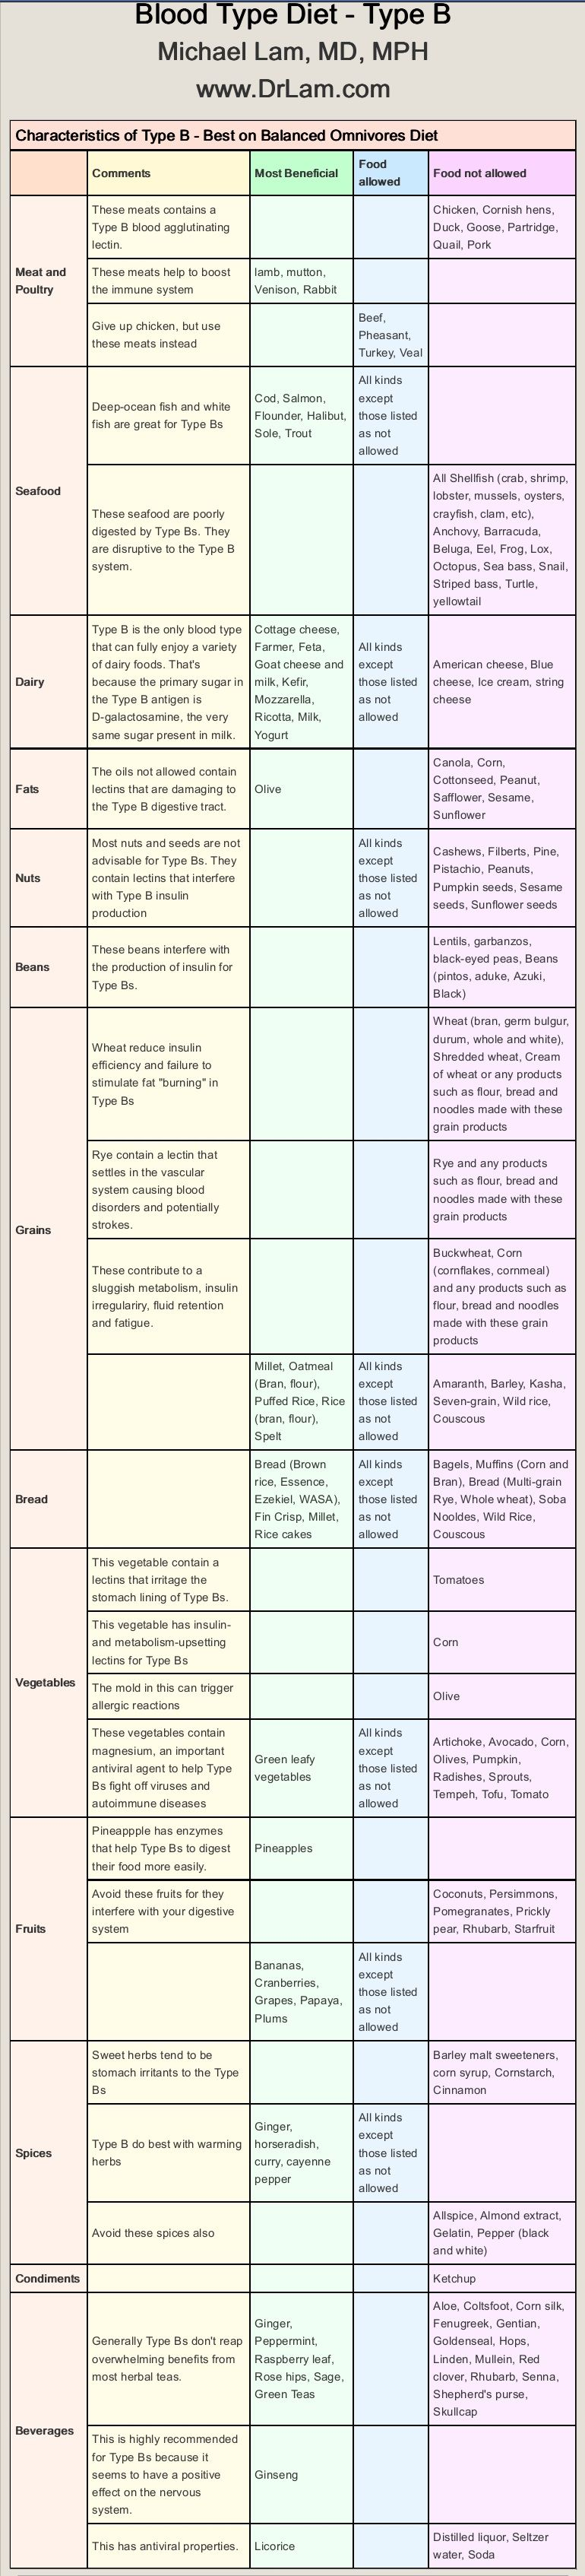 Food Chart Blood Type Diet B+ More